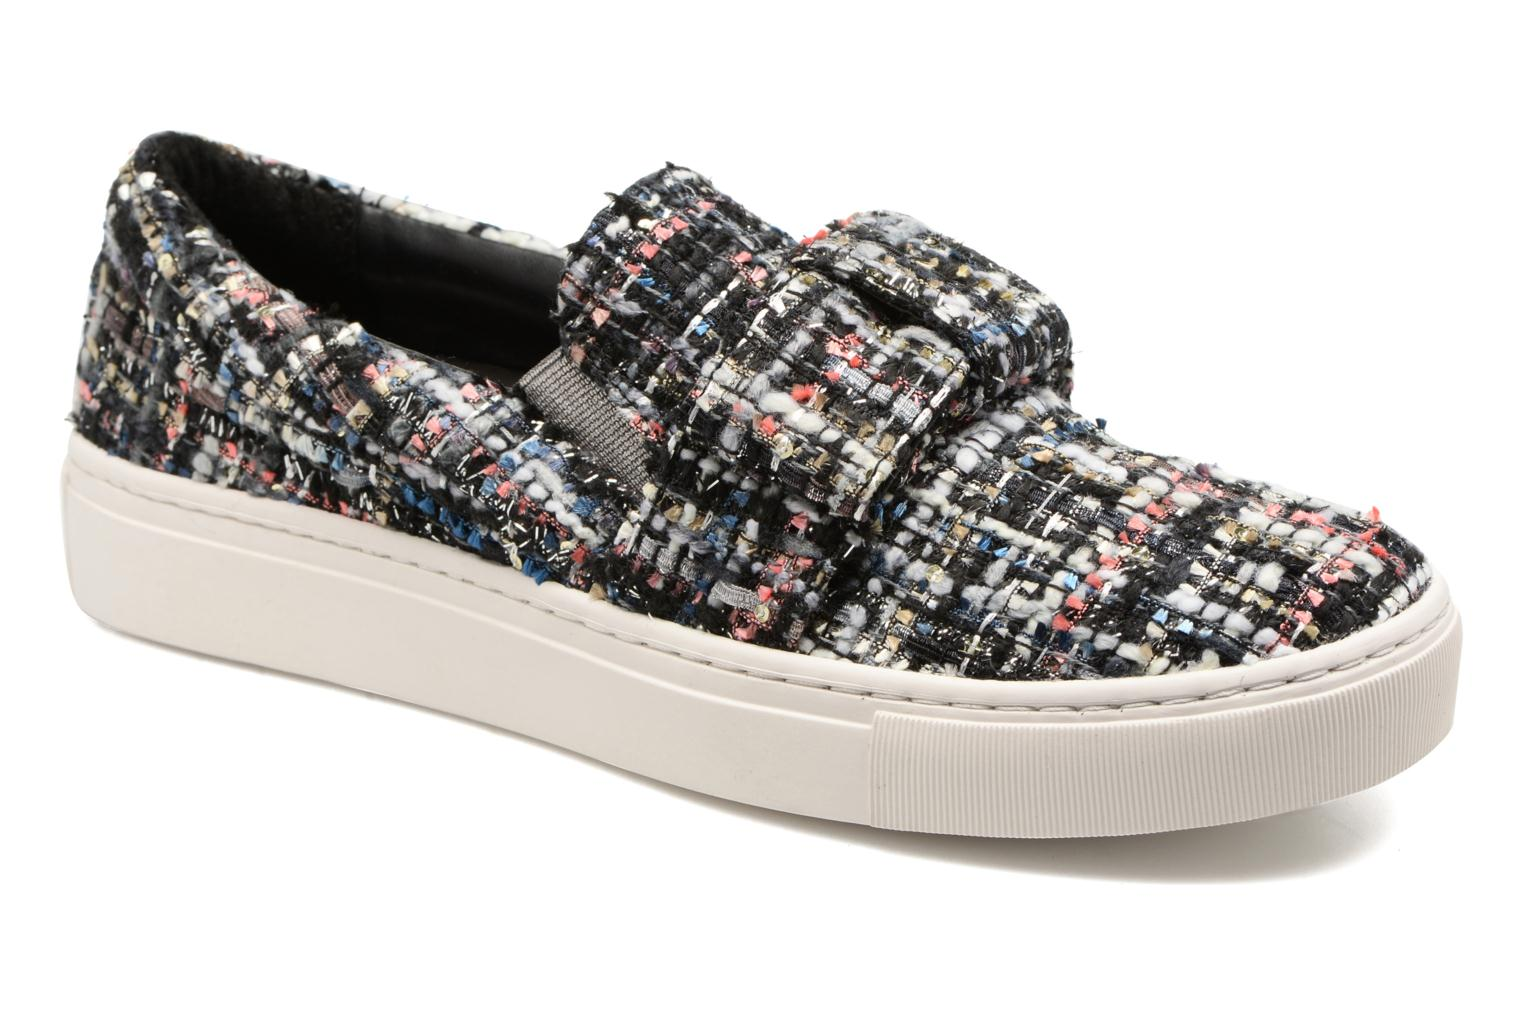 Kupsole Bow Slip On by Karl LagerfeldRebajas - 20%